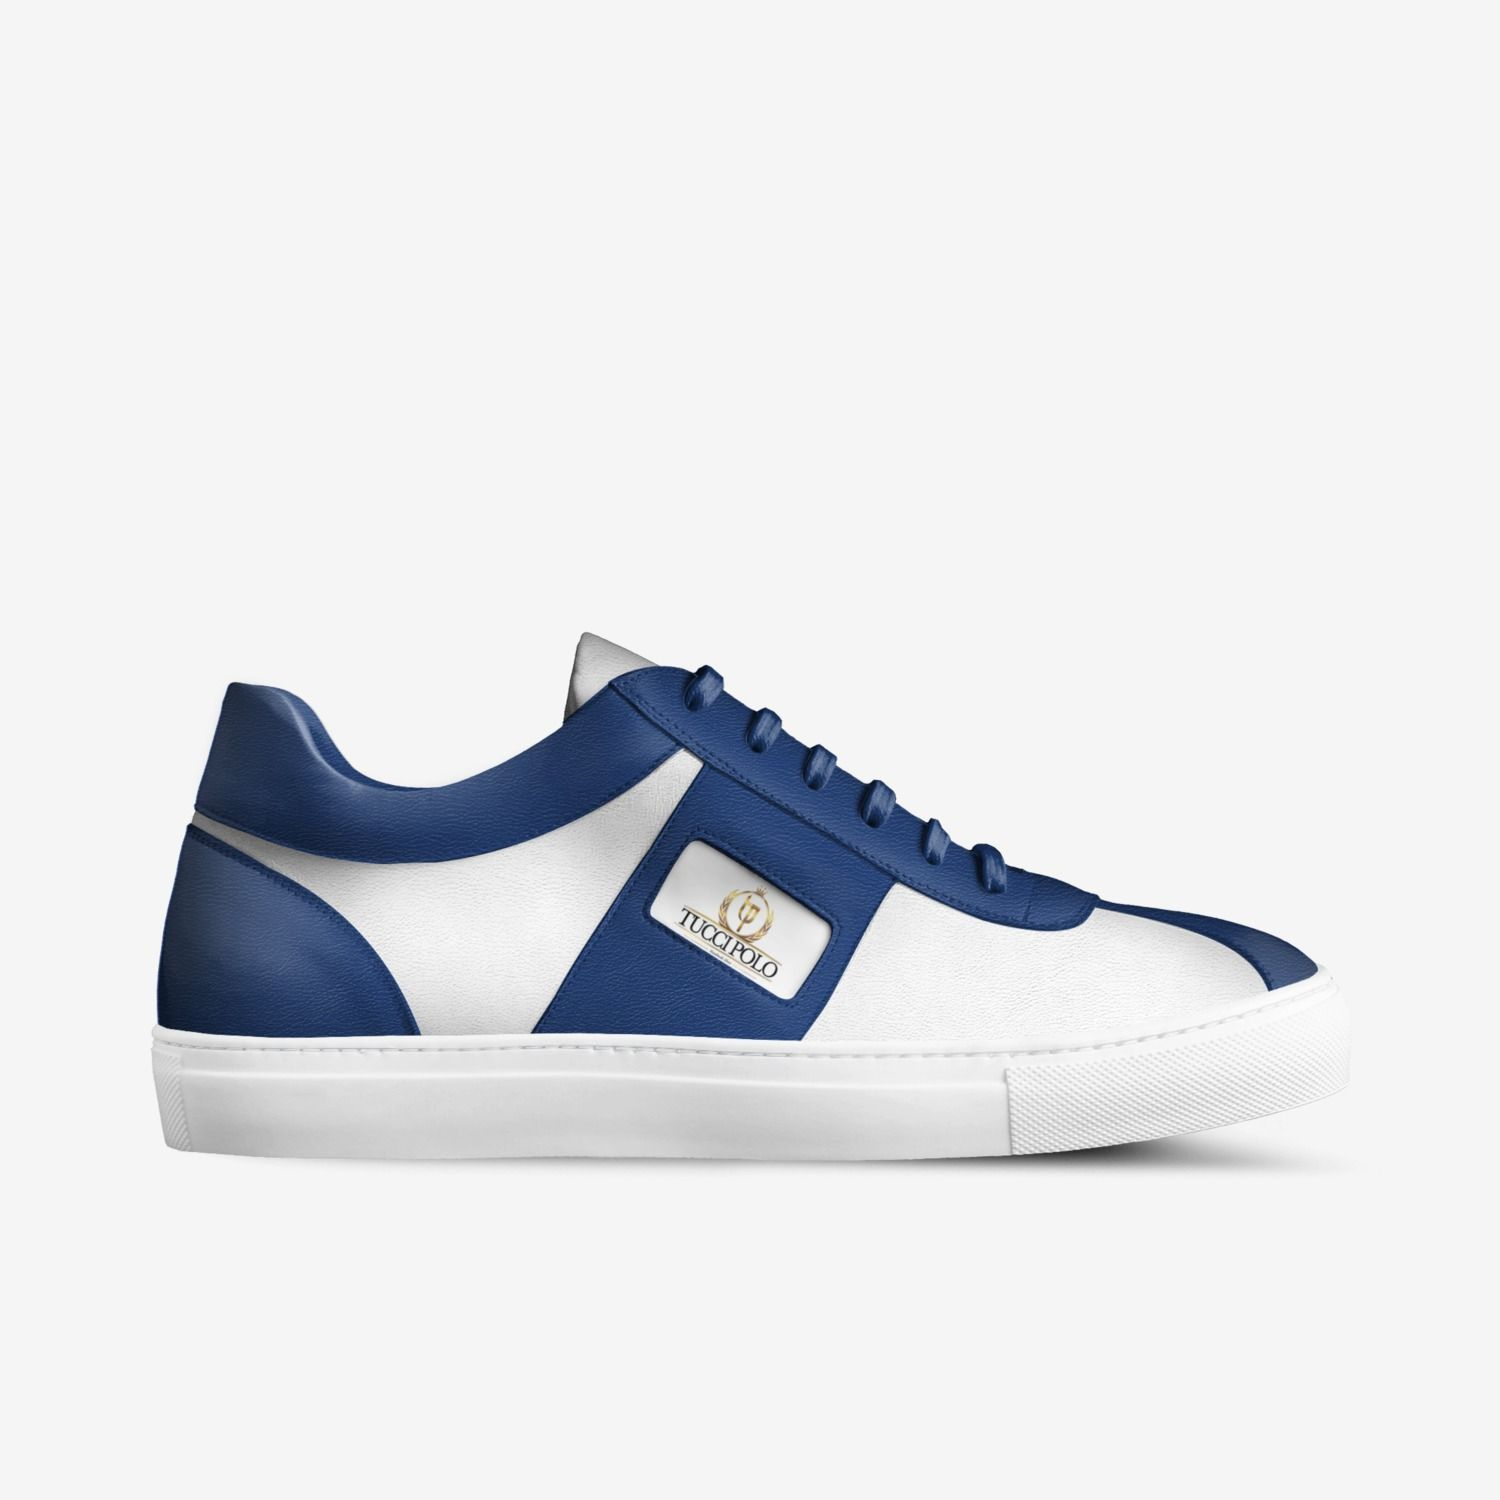 Womens Italian Sneakers : TucciPolo Womens Minimal Low Top Blue and White  Luxury Sneakers Custom Made